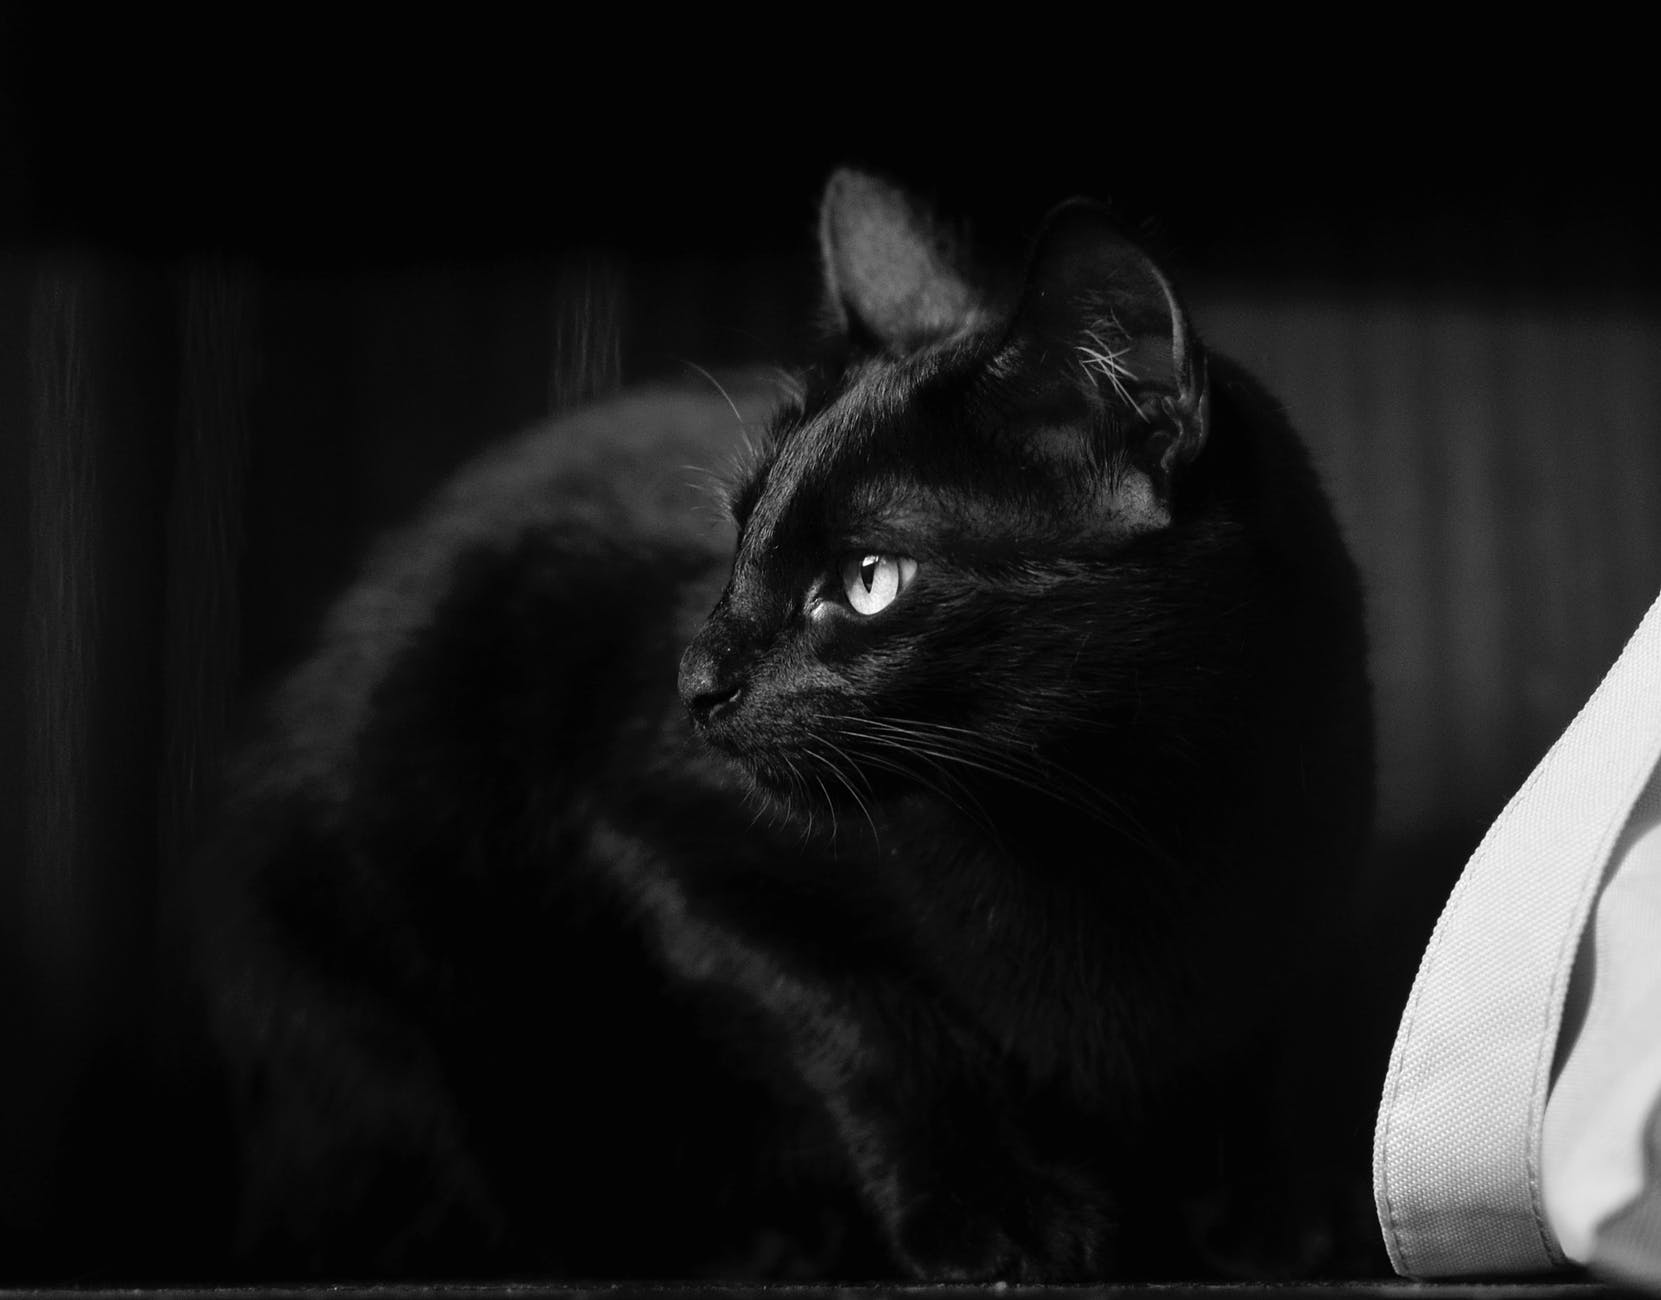 monochrome photography of black cat